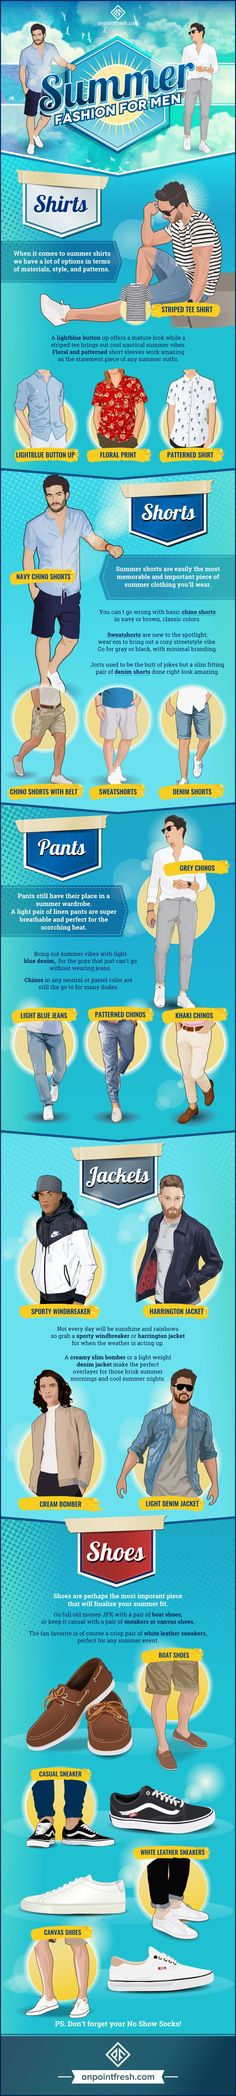 Visual Guide To Men's Summer Fashion - hope this helps you find your summer style!